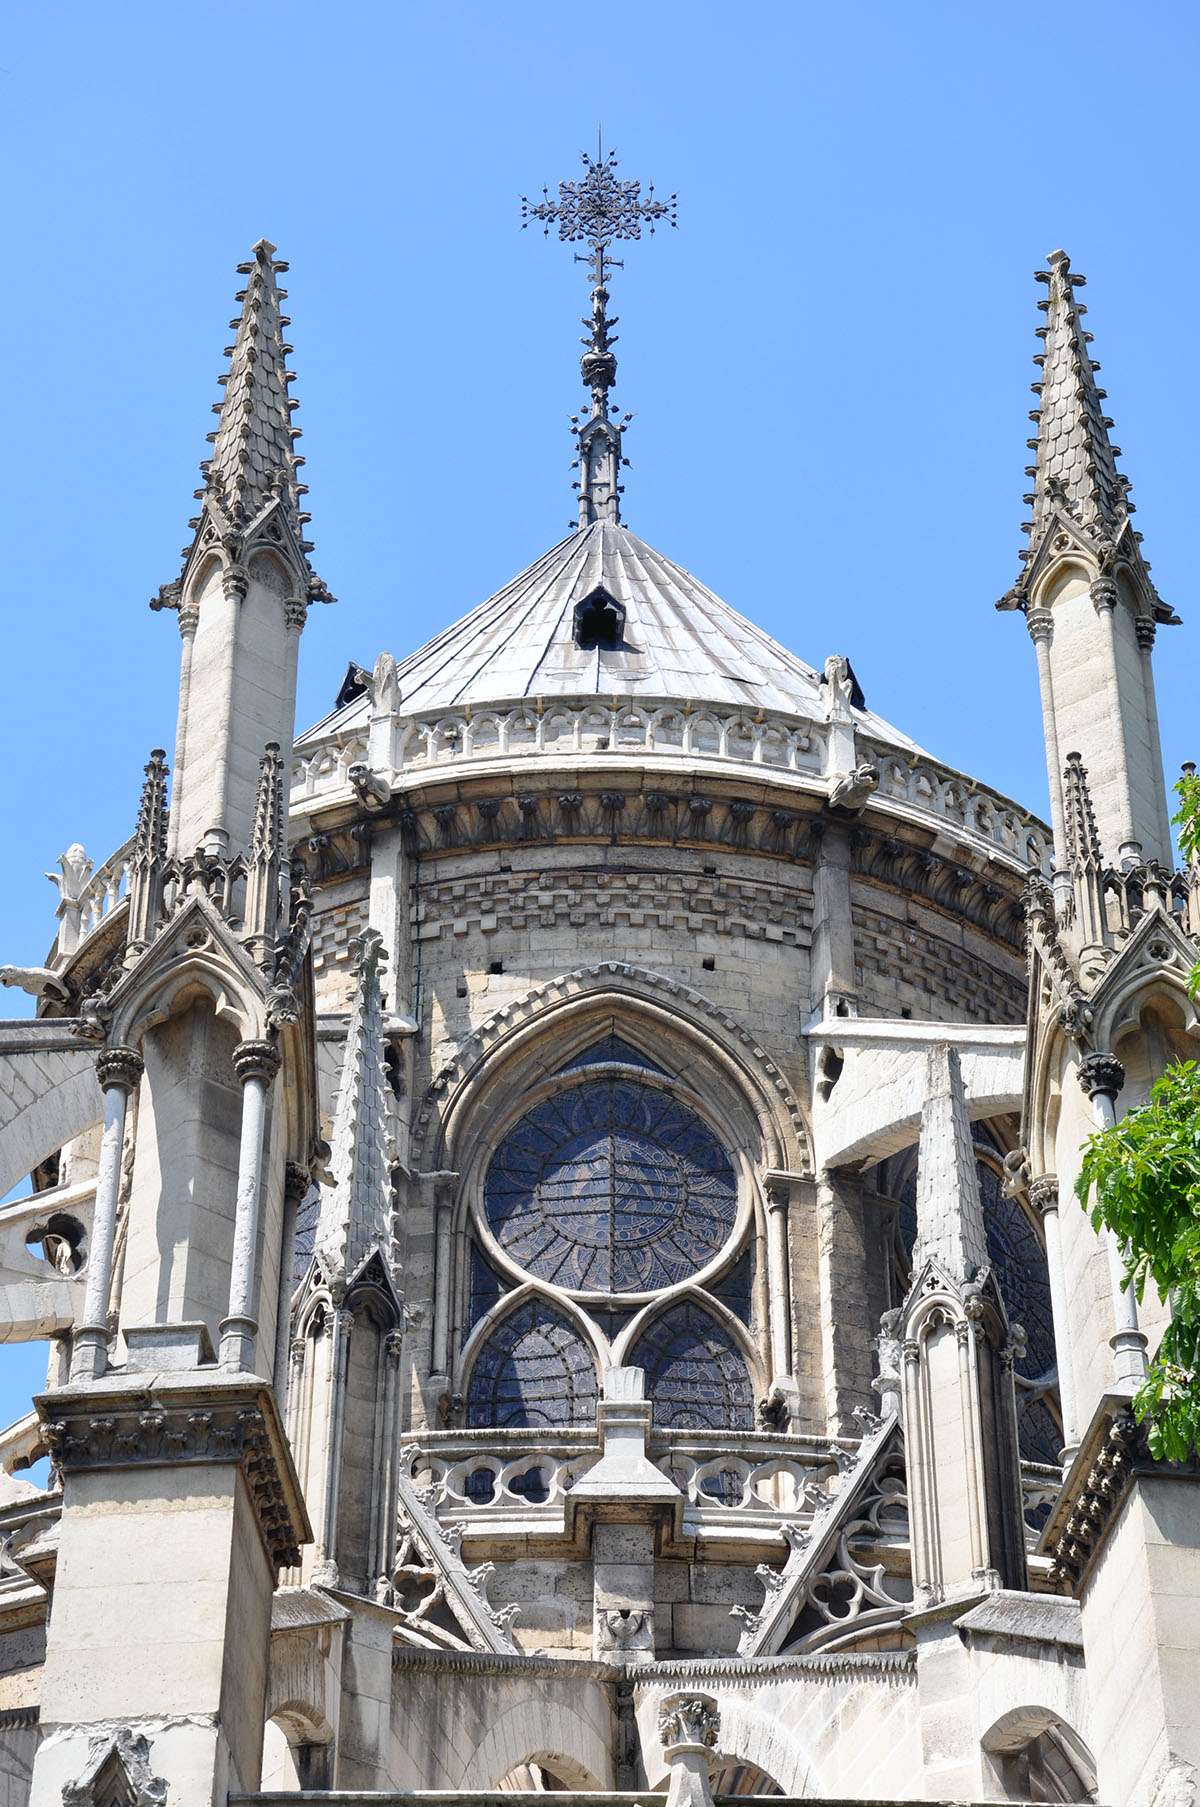 Notre Dame Cathedral exterior 07 June 2010 photo by Bob Borson